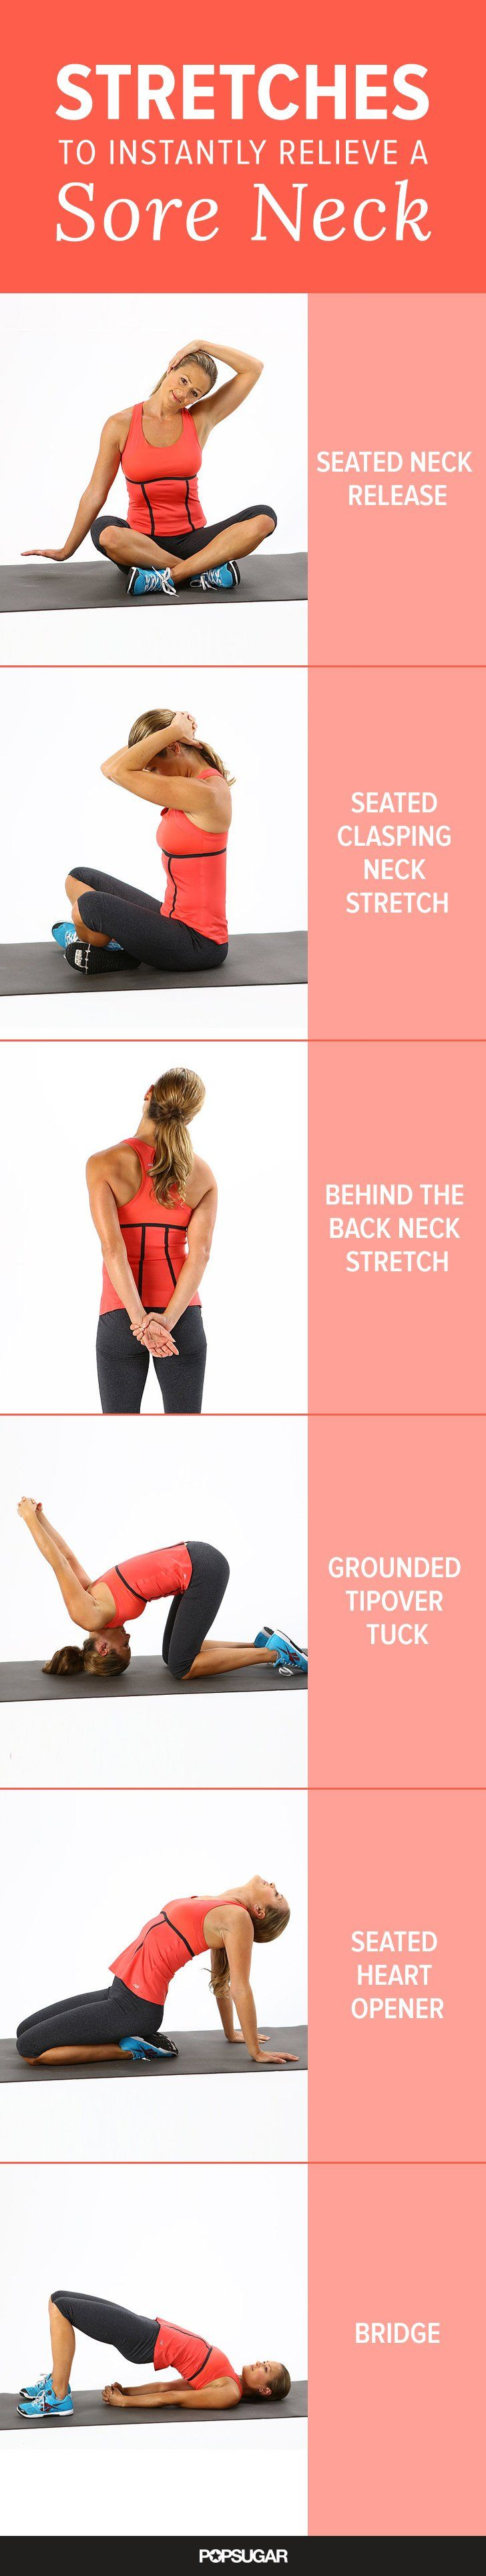 Get rid of tension in your neck with these simple stretches. Remember to be gentle.